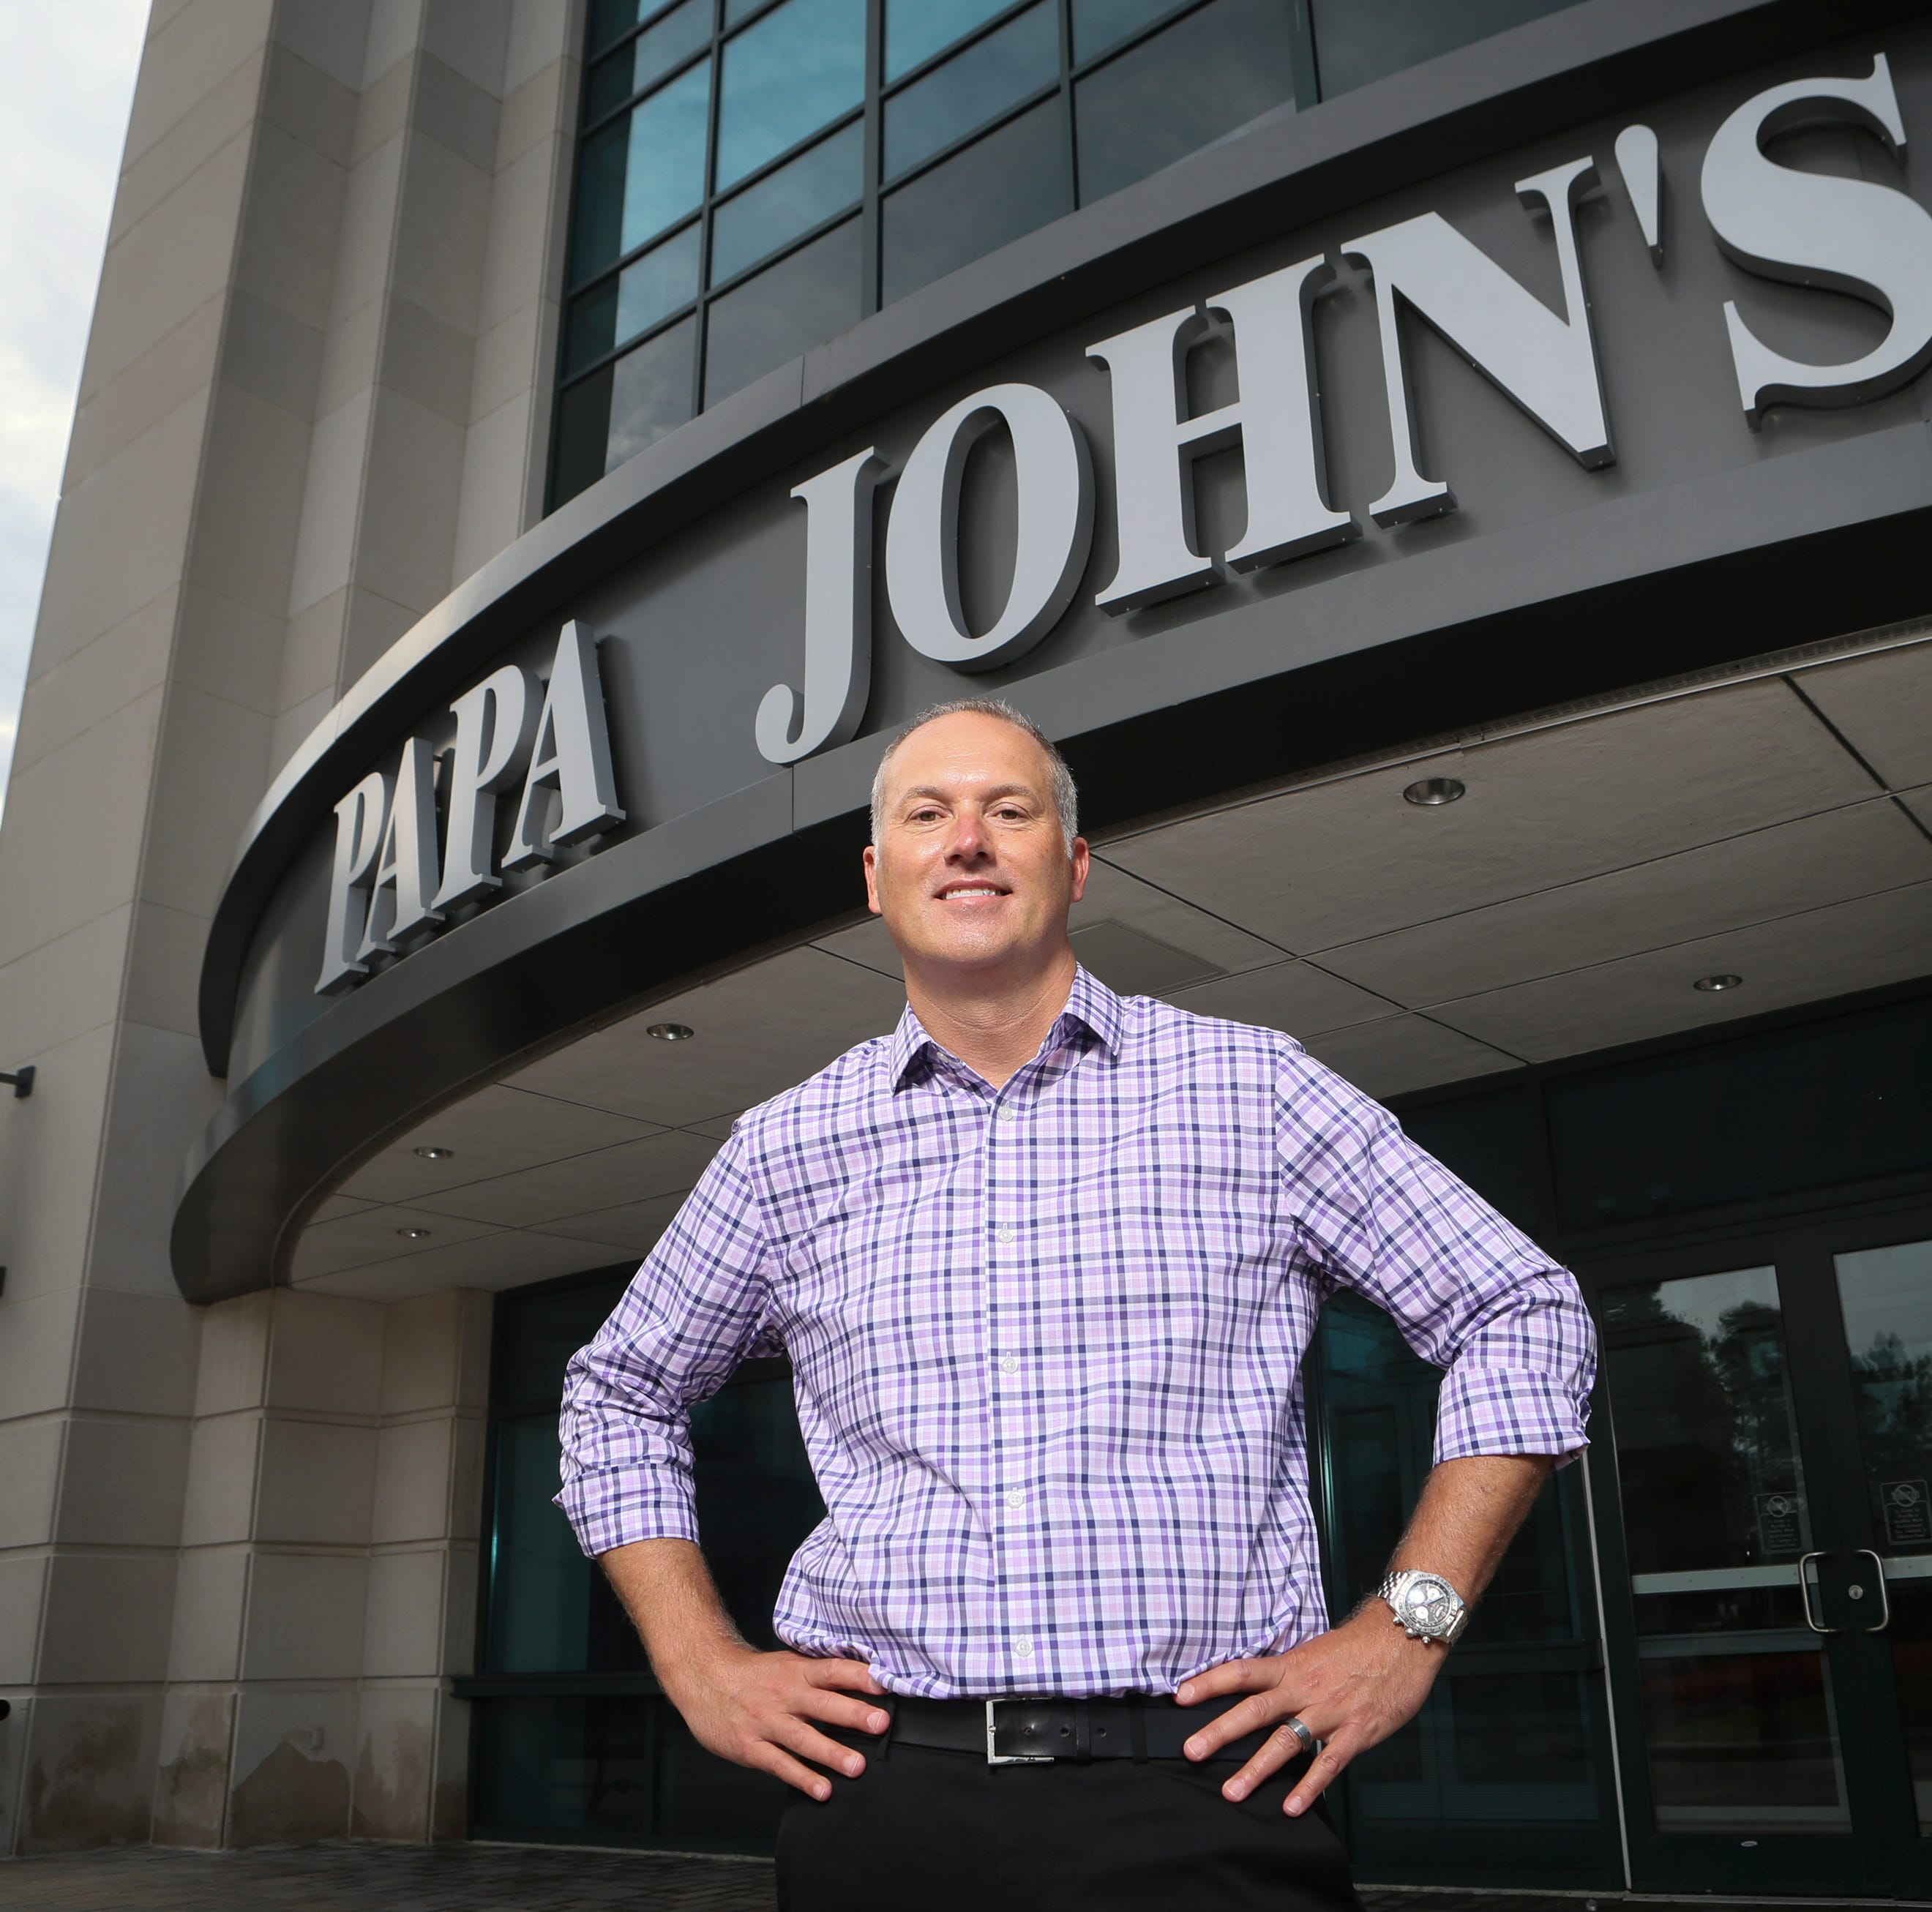 Papa John's embattled CEO Steve Ritchie braces for fight: 'Pizza is my life'